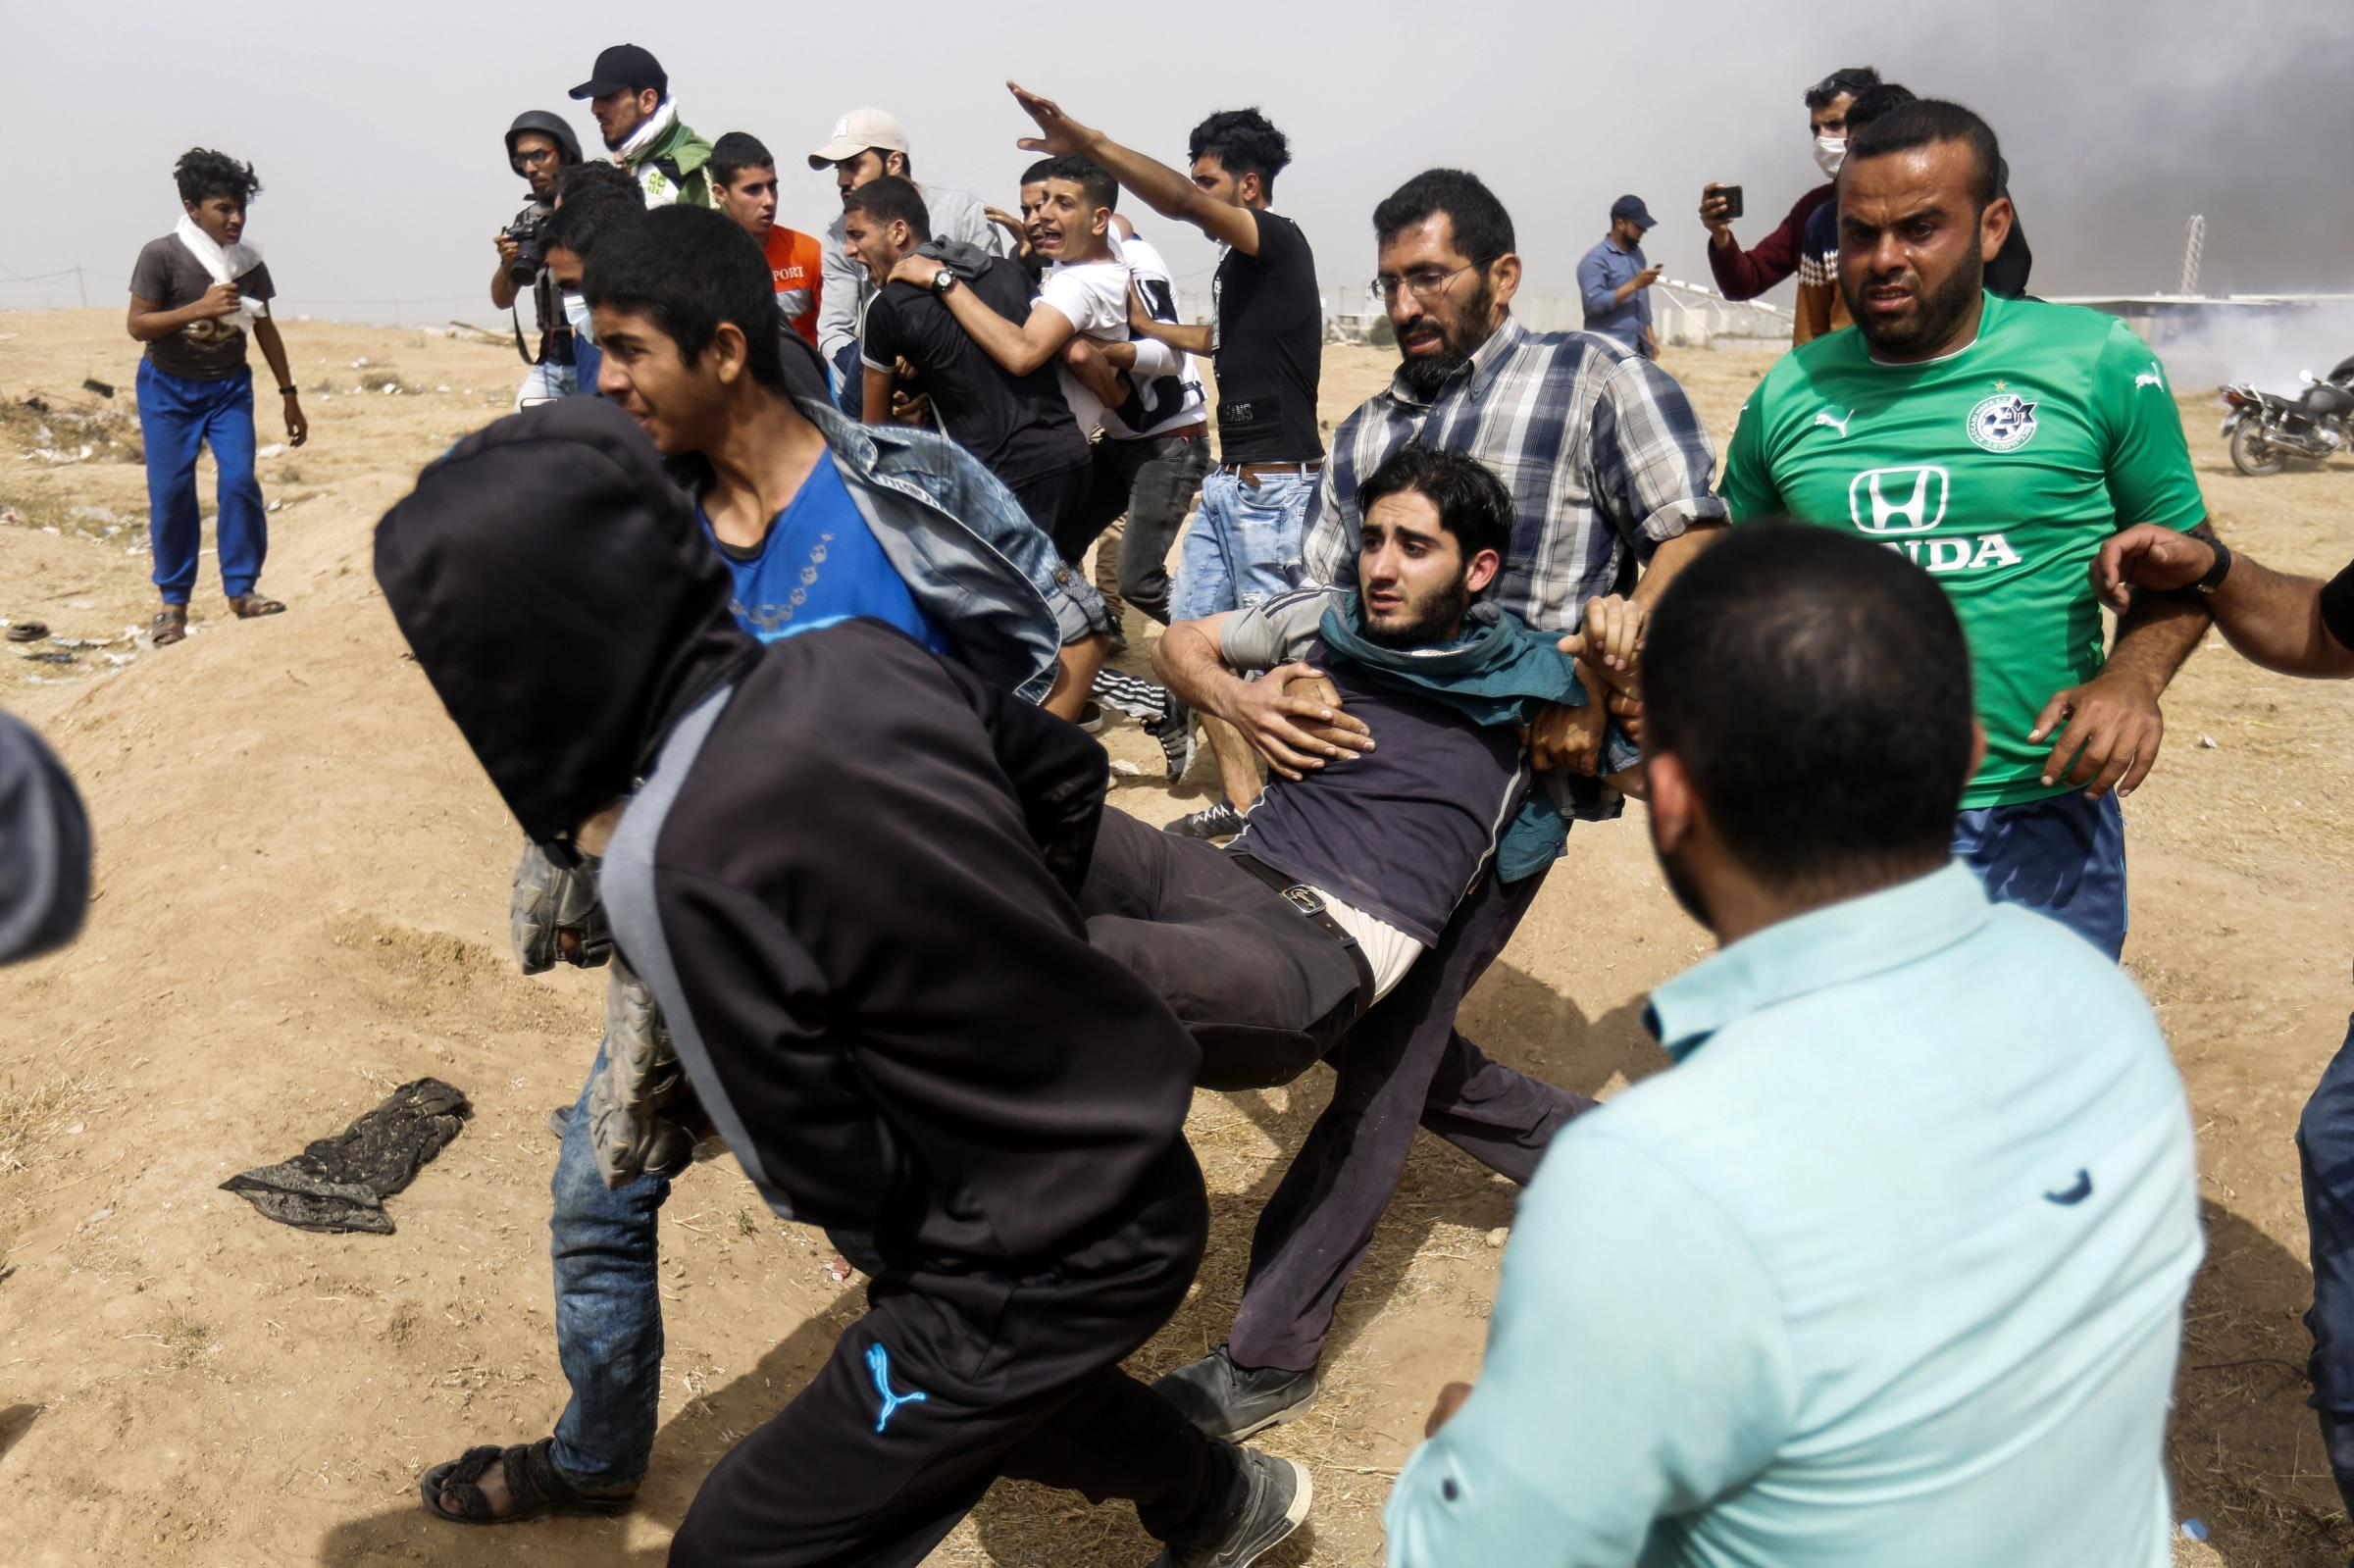 Palestinian protesters carry away a man injured during clashes with Israeli forces in the Gaza Strip